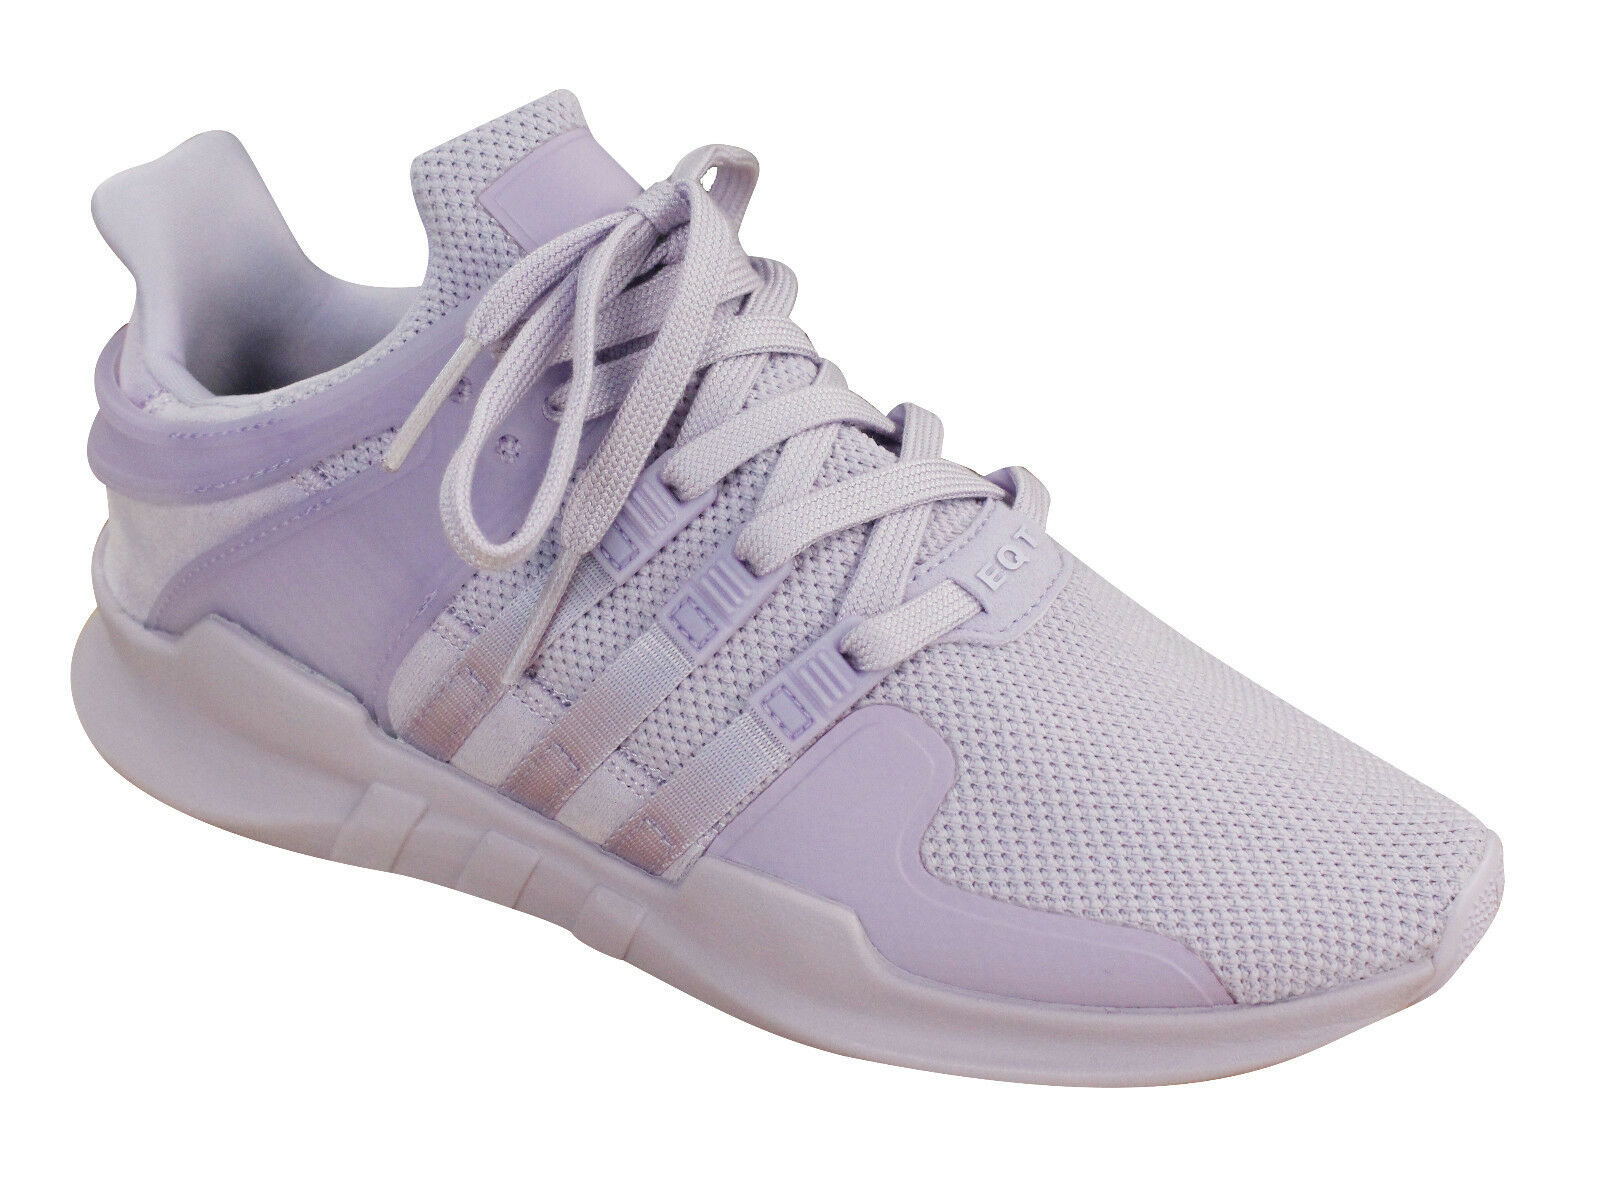 the latest 46df2 2ced7 Adidas Originals Equipment Support Adv Womens Trainers